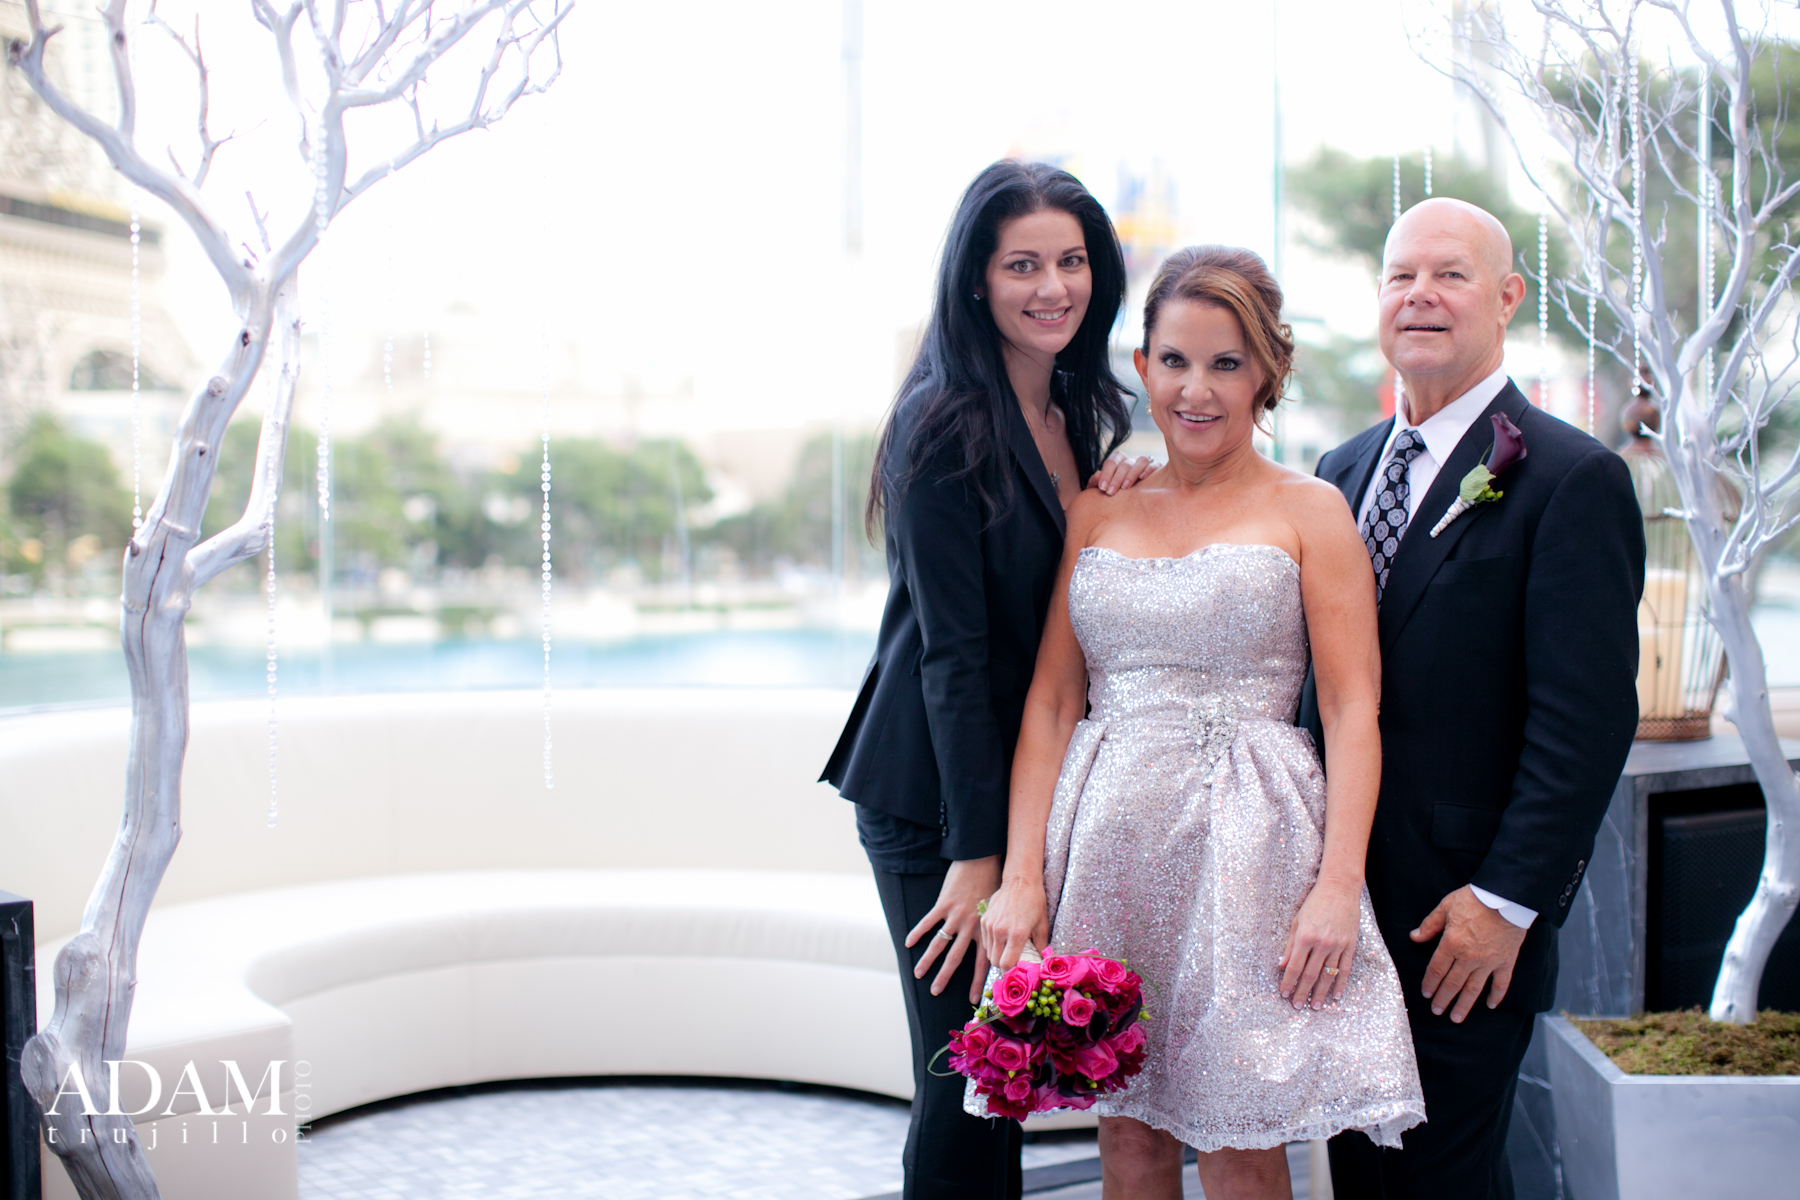 I was thrilled to work with such wonderful people and give them the luxury elopement of their dreams.